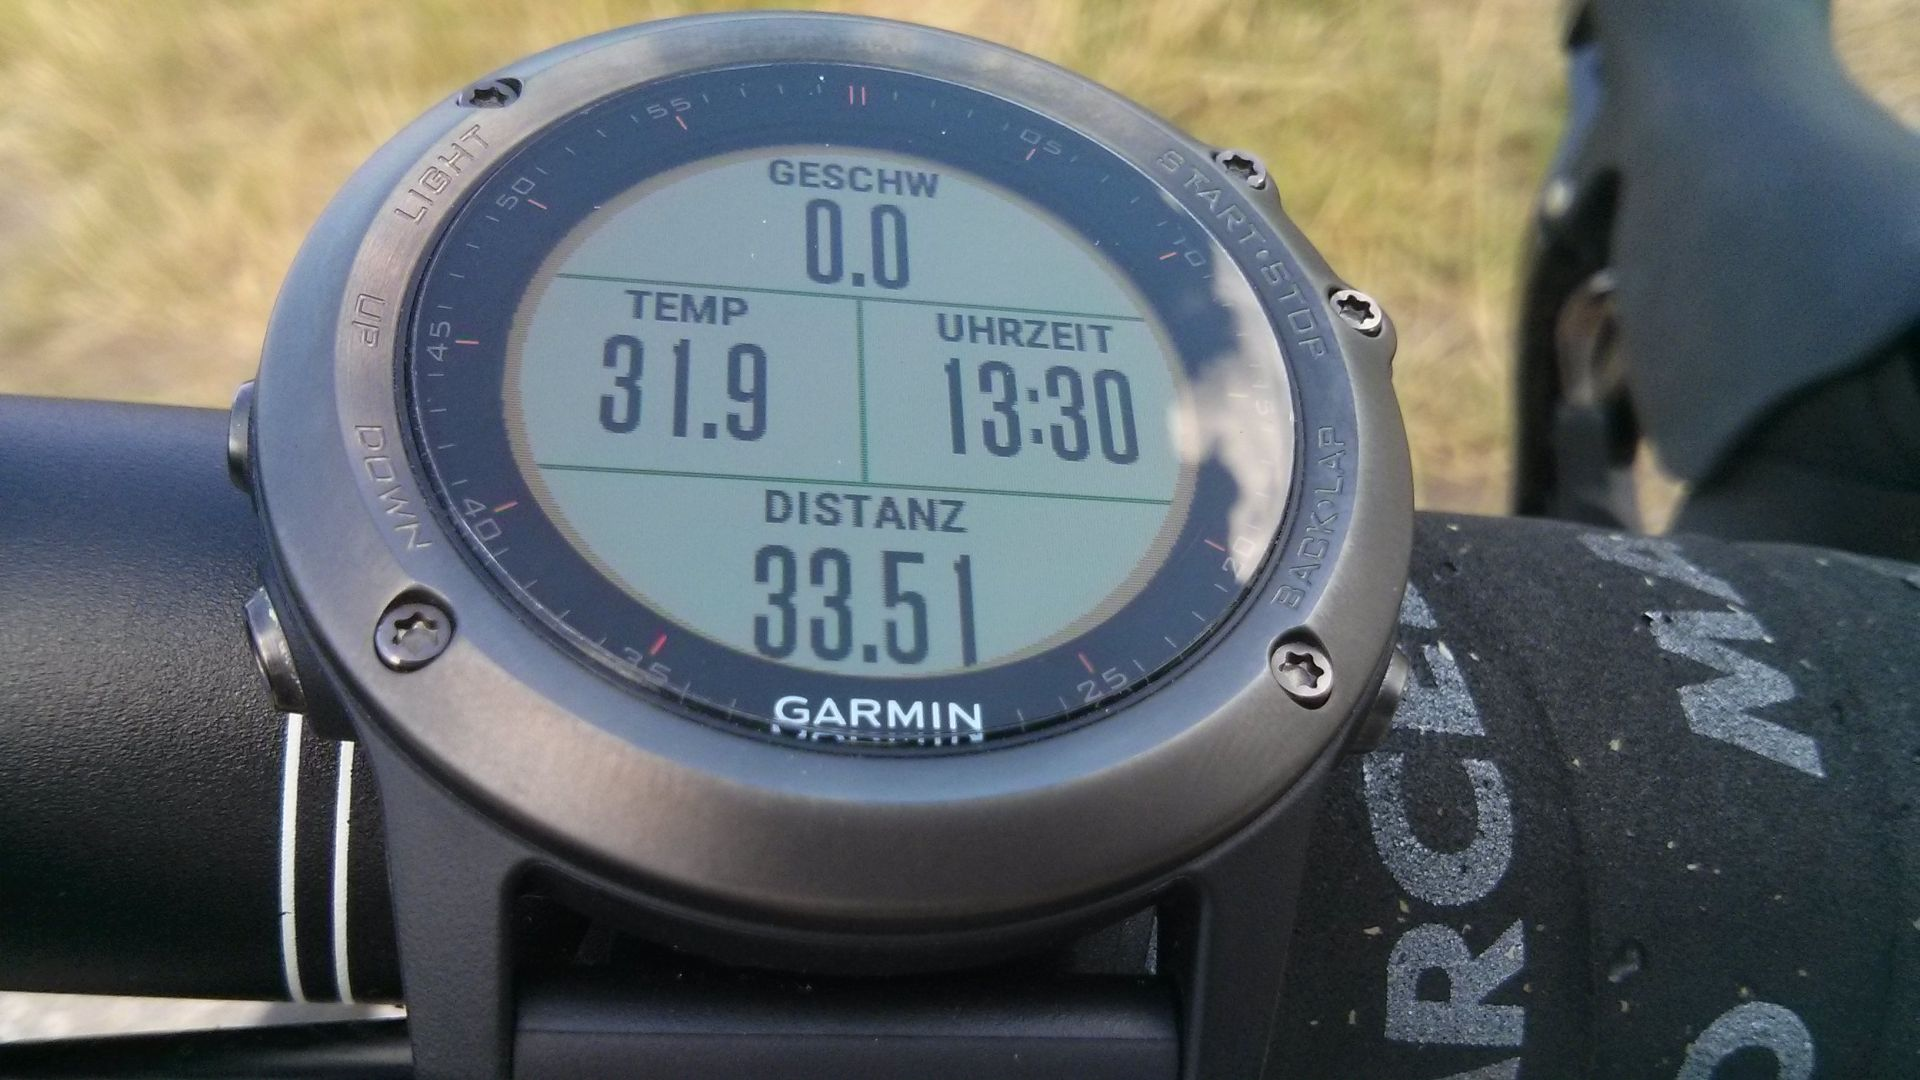 garmin fenix 3 als tacho und navi am rennrad wurzlwerk. Black Bedroom Furniture Sets. Home Design Ideas